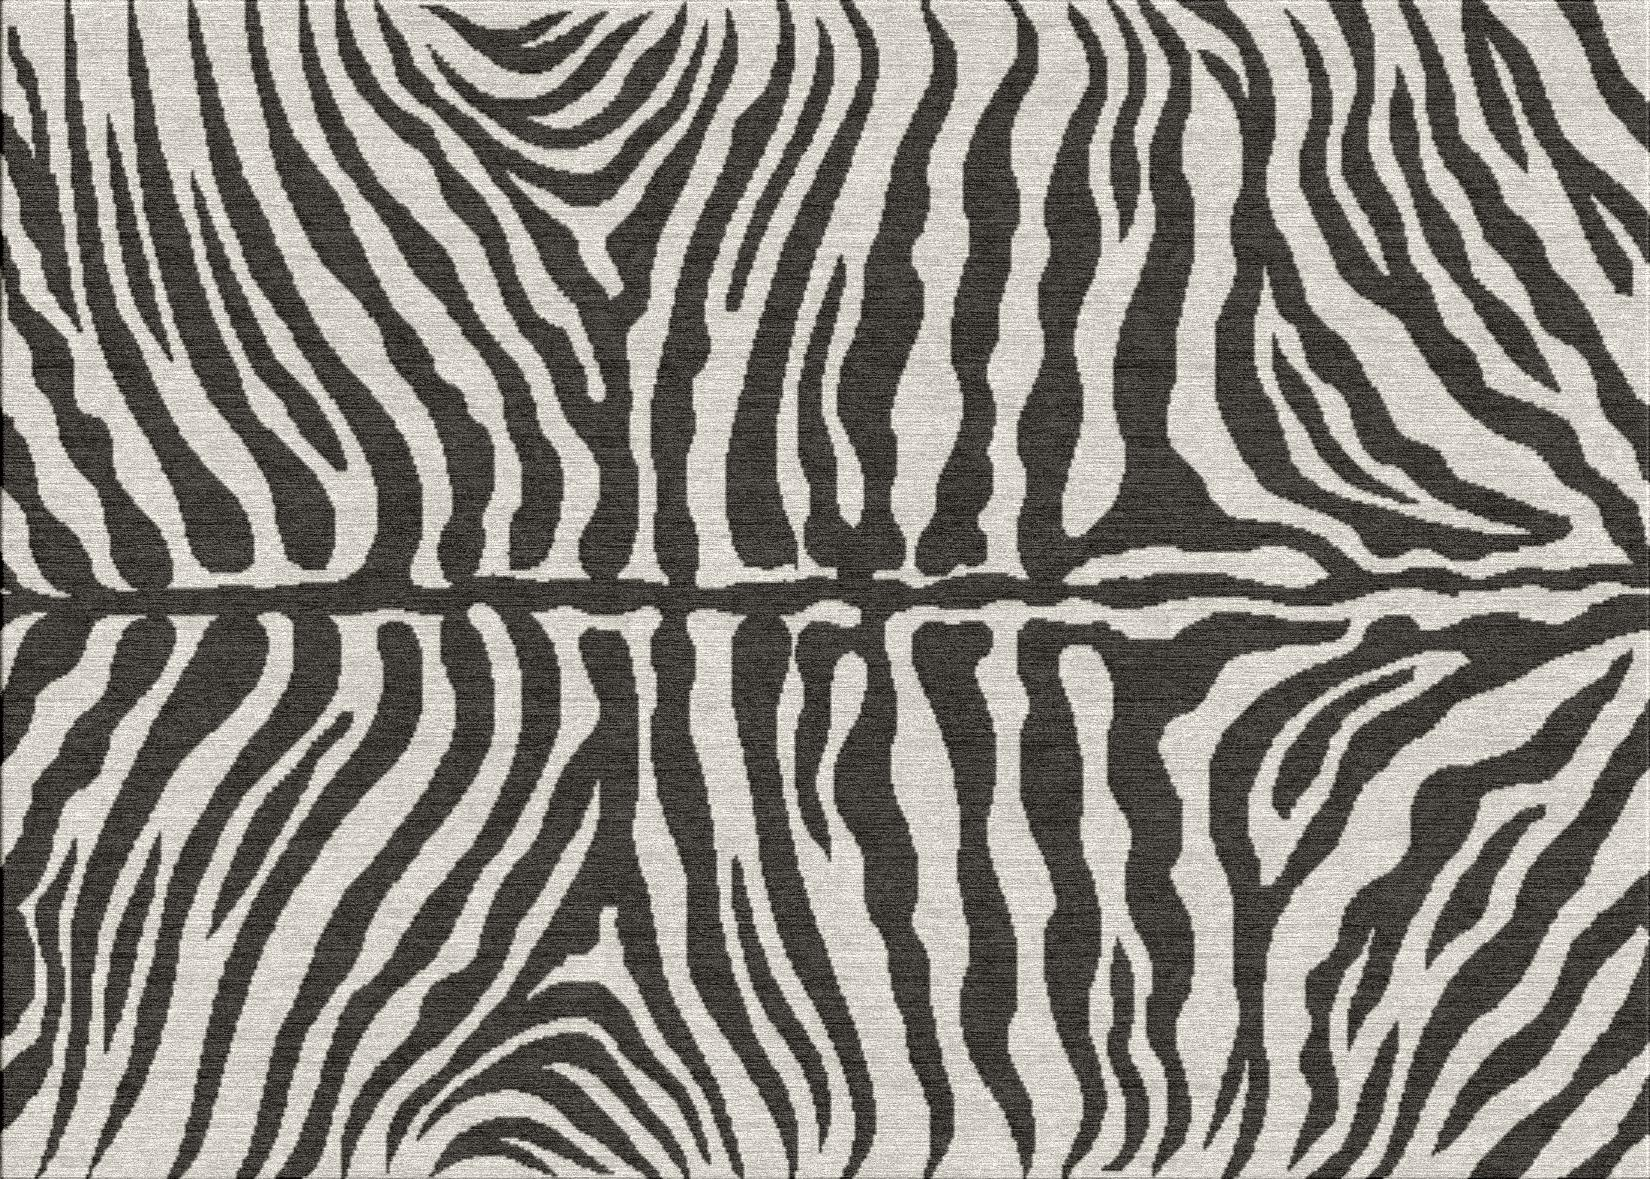 cowhide usa including many zebra hypermallapartments rugs beautiful braided styles of in contemporary rug area